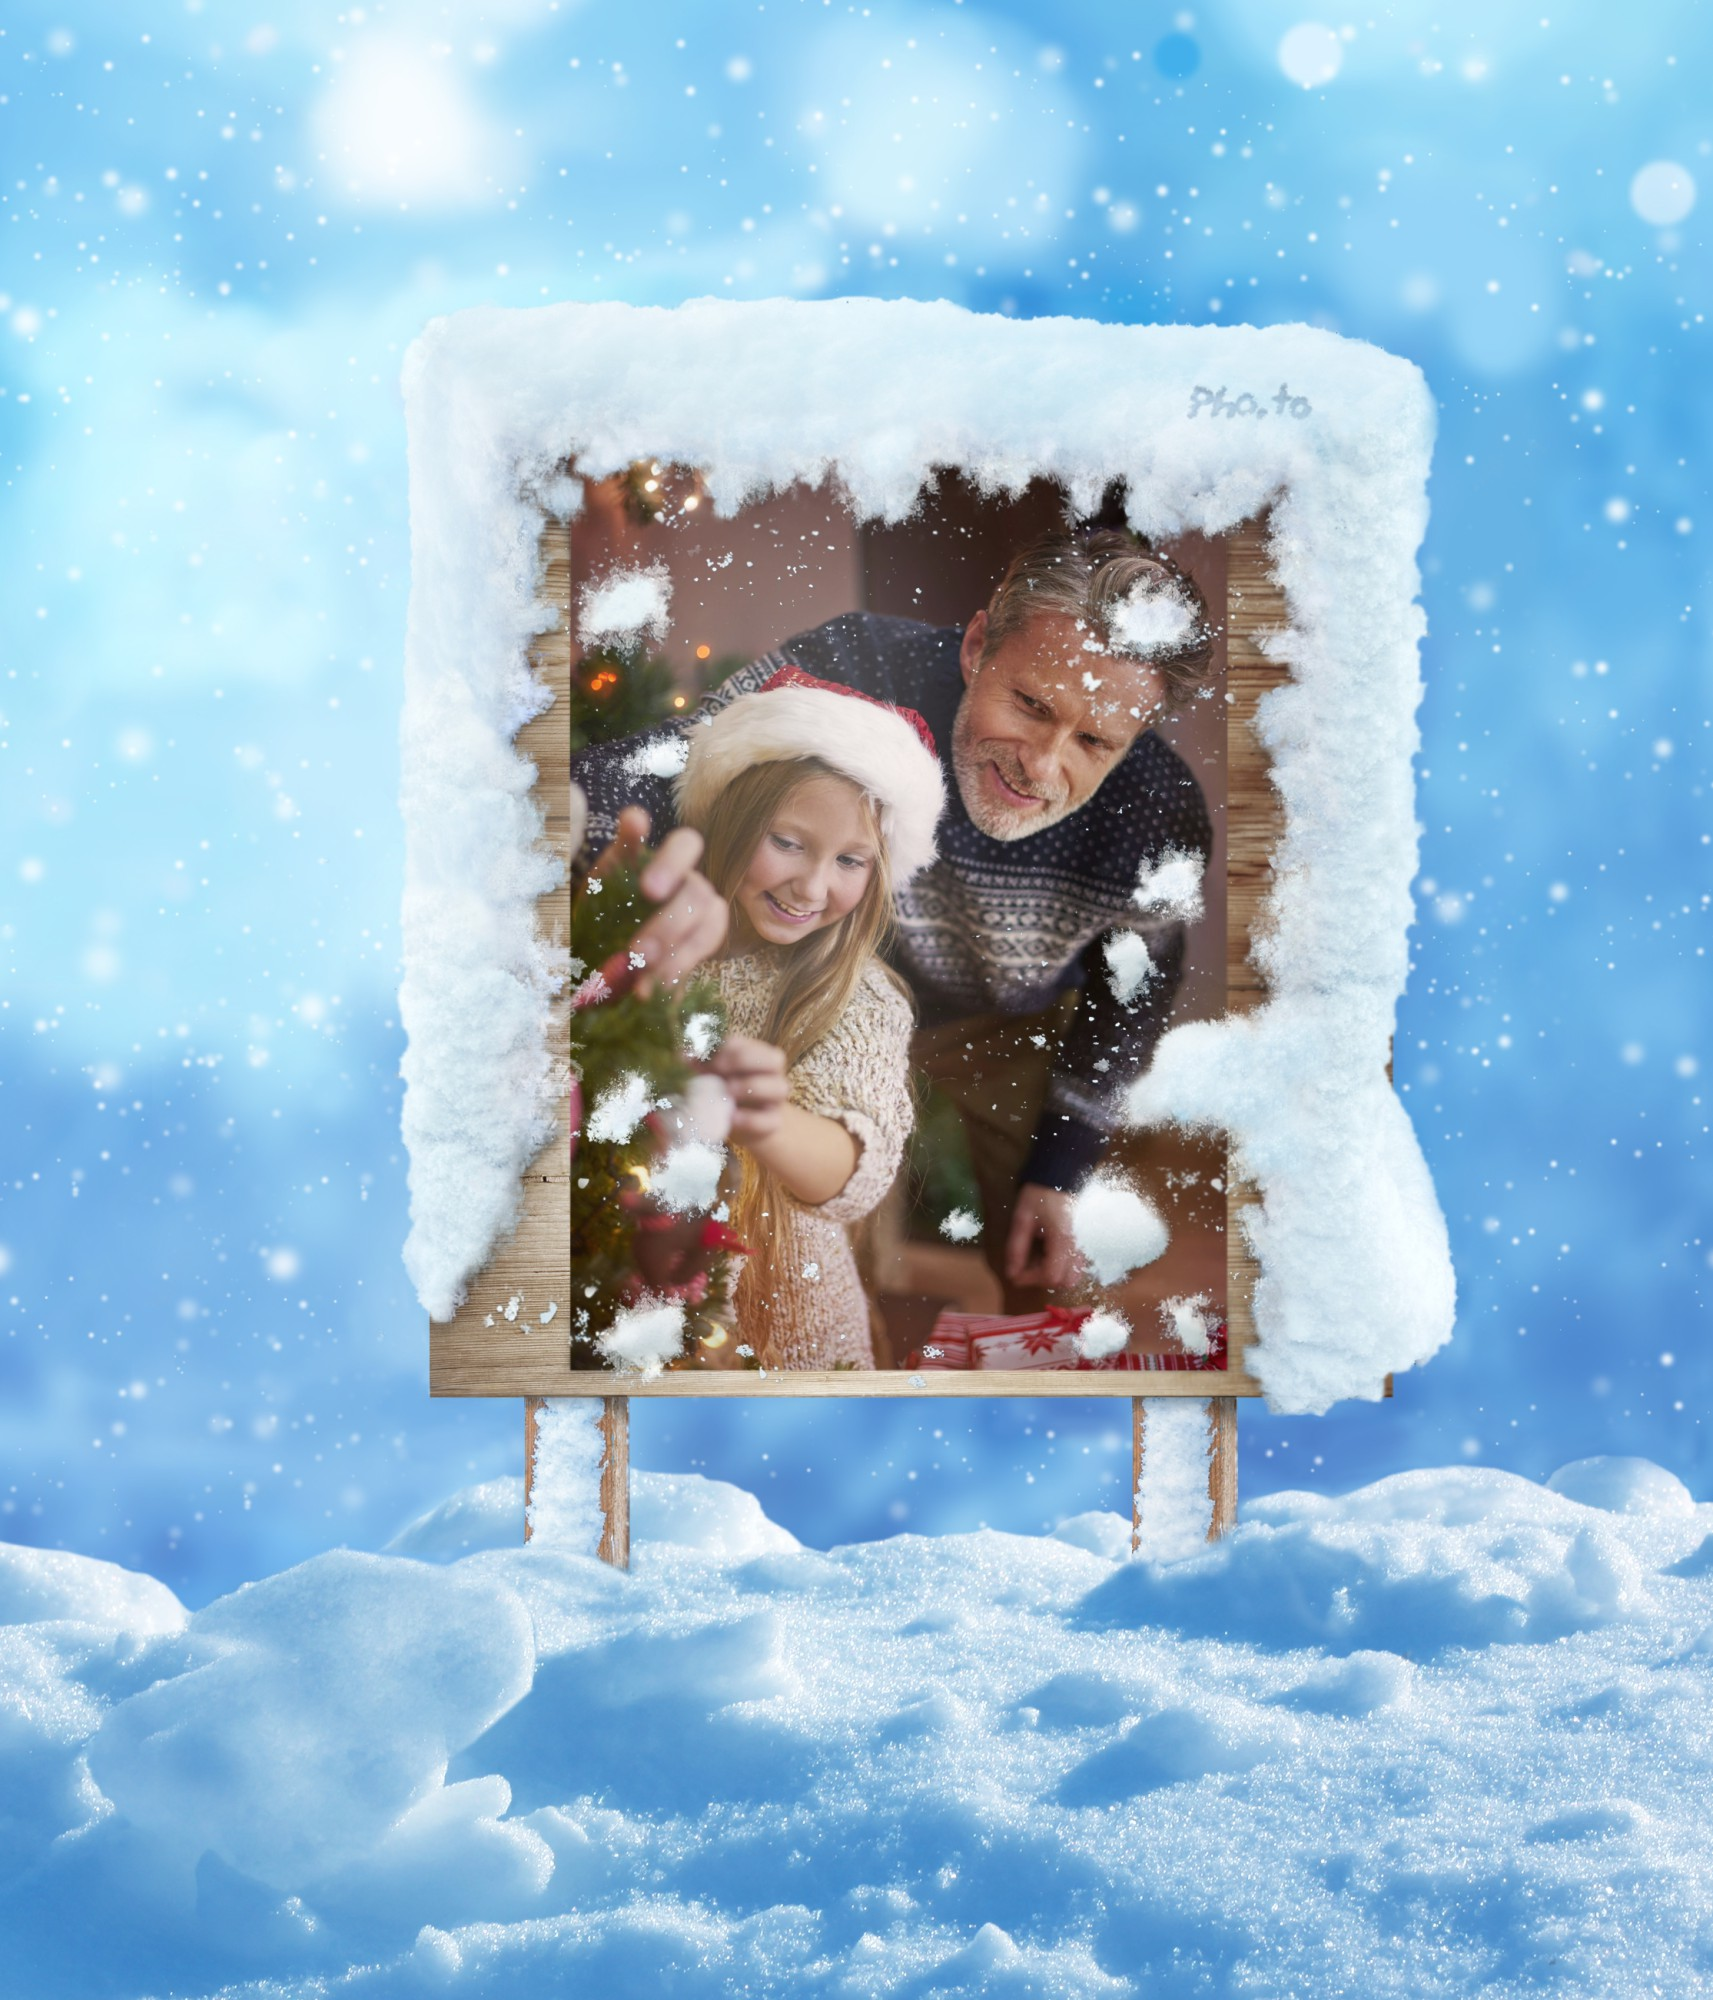 Christmas family photo is inserted into a scene with wooden signboard in the snow.